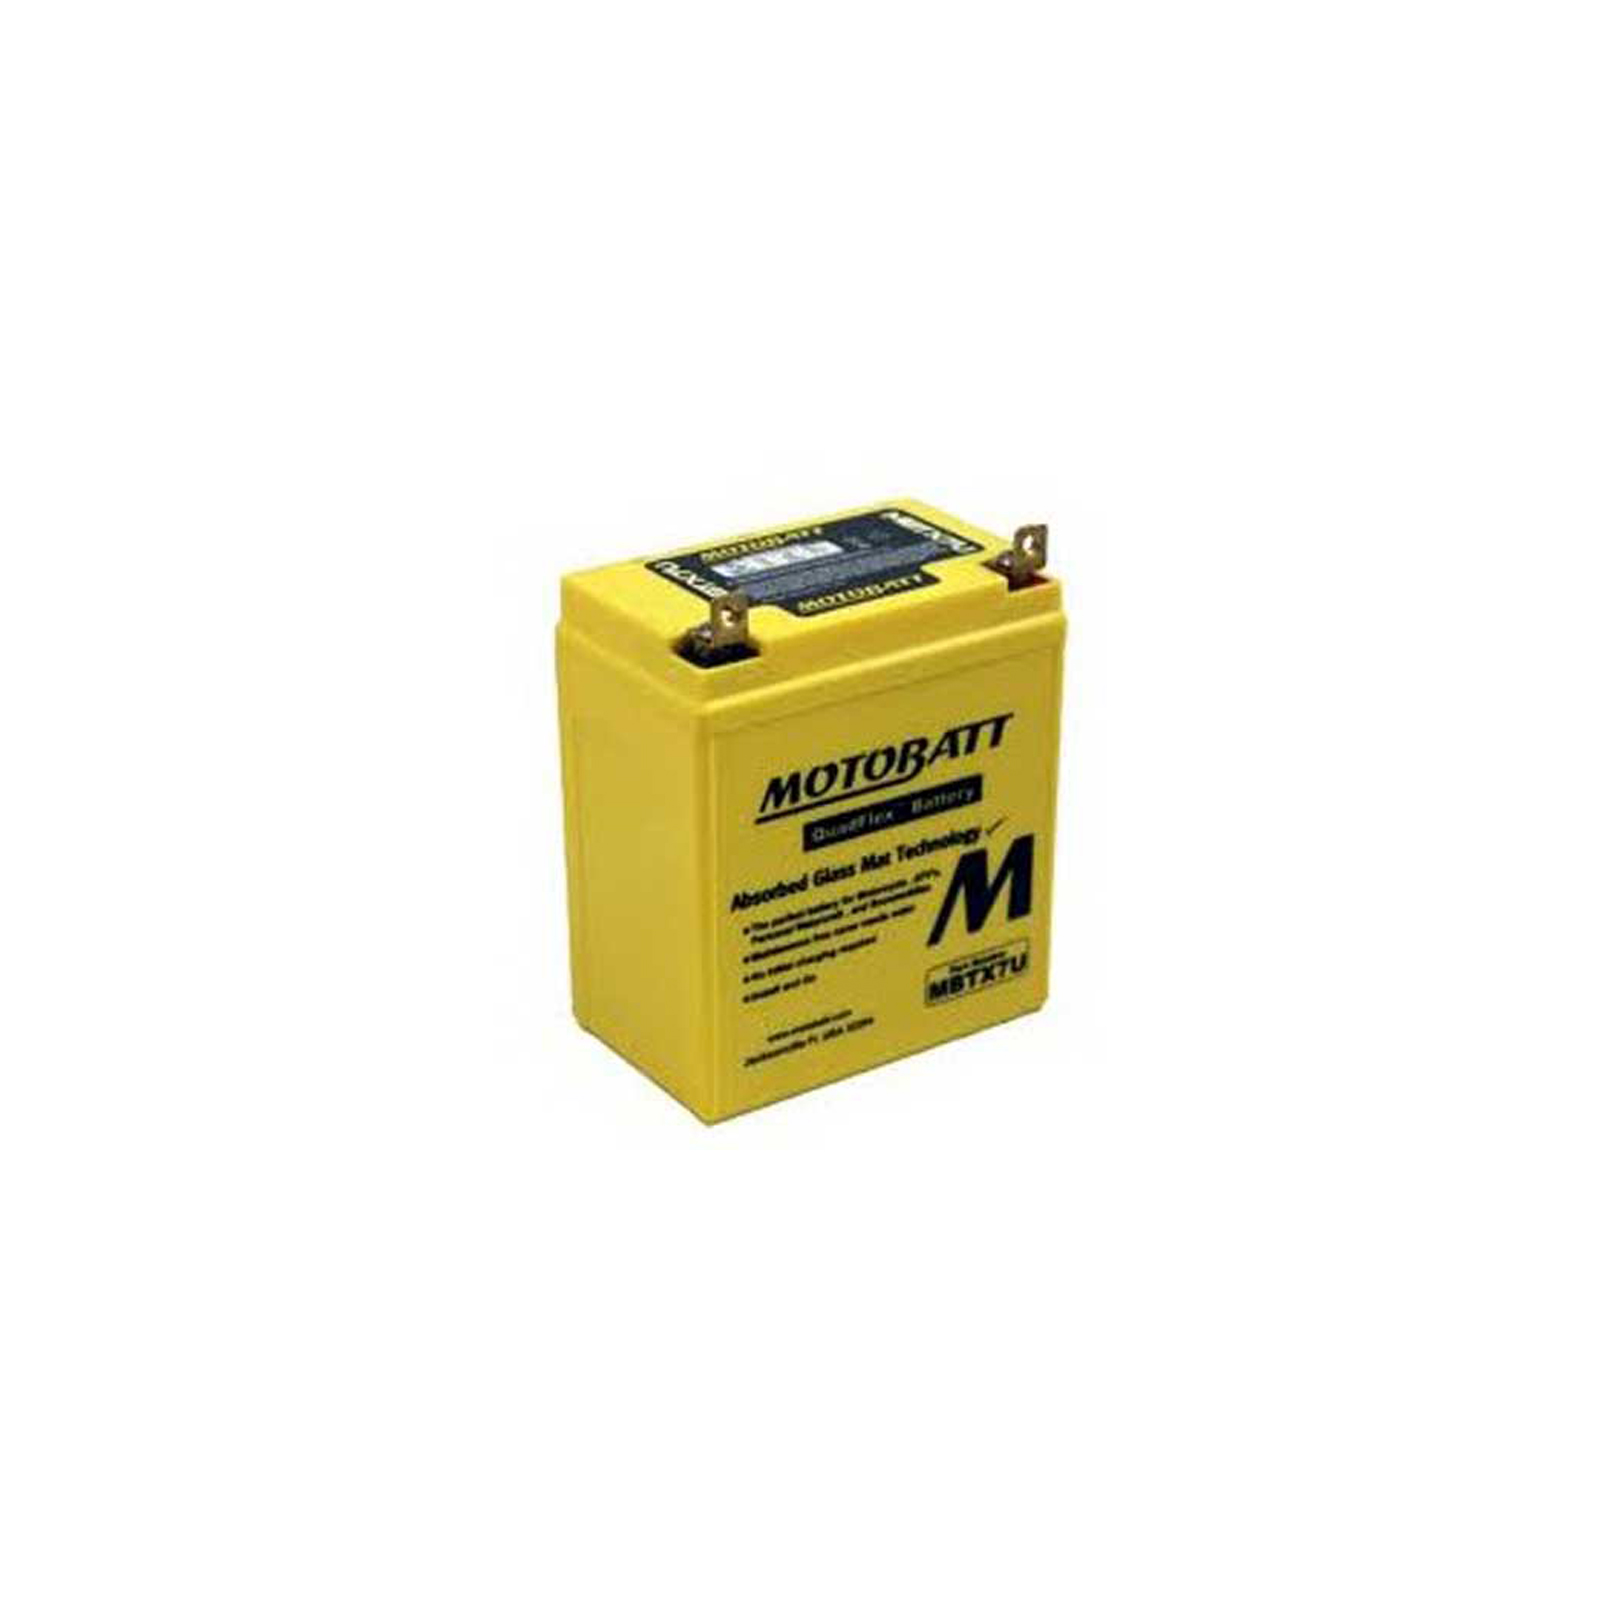 Motobatt Motorcycle Batteries Latest Technology